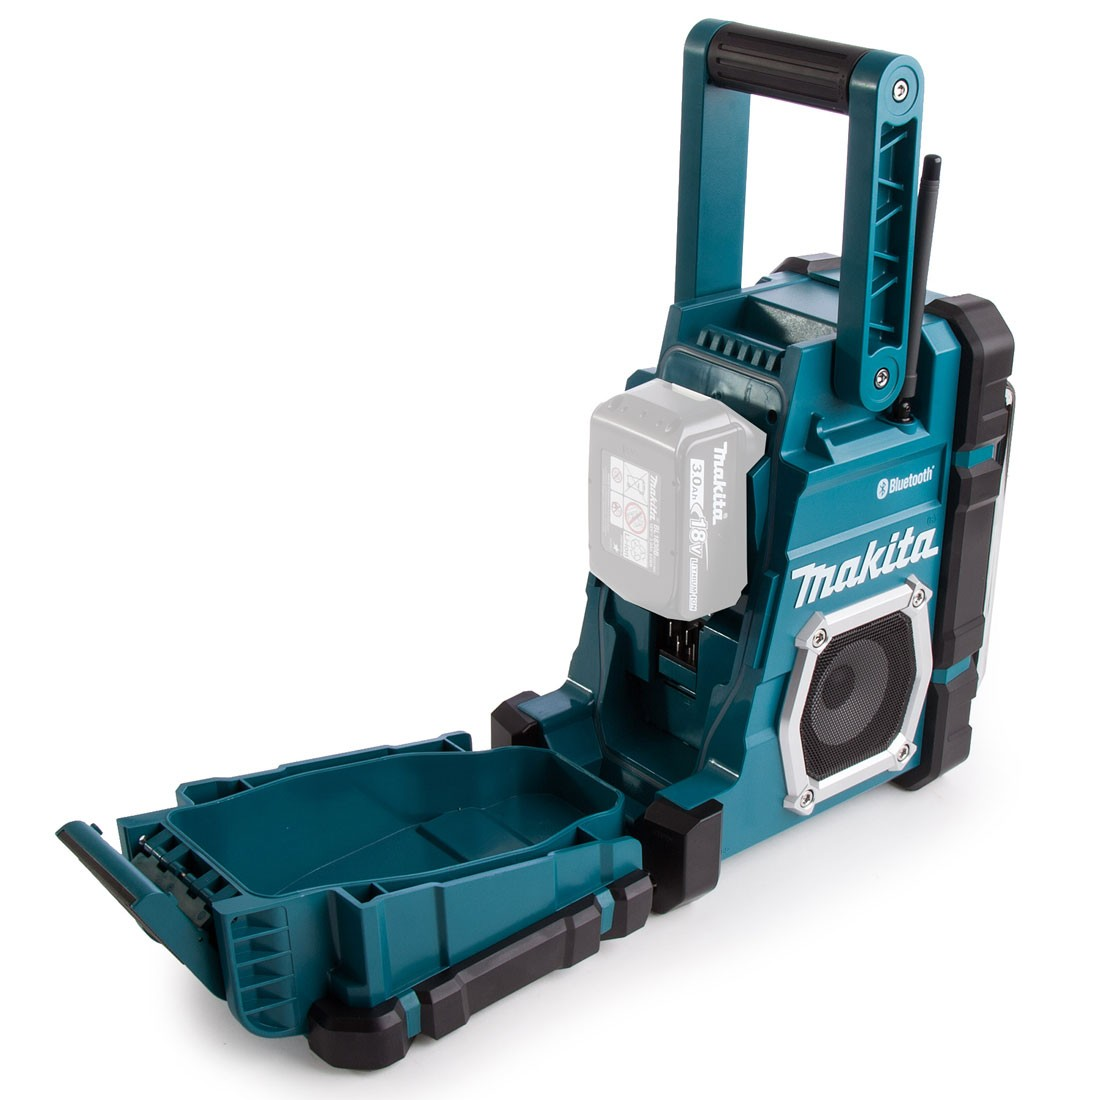 Makita dmr108 18v lxt cxt bluetooth job site radio - Radio makita dmr108 ...